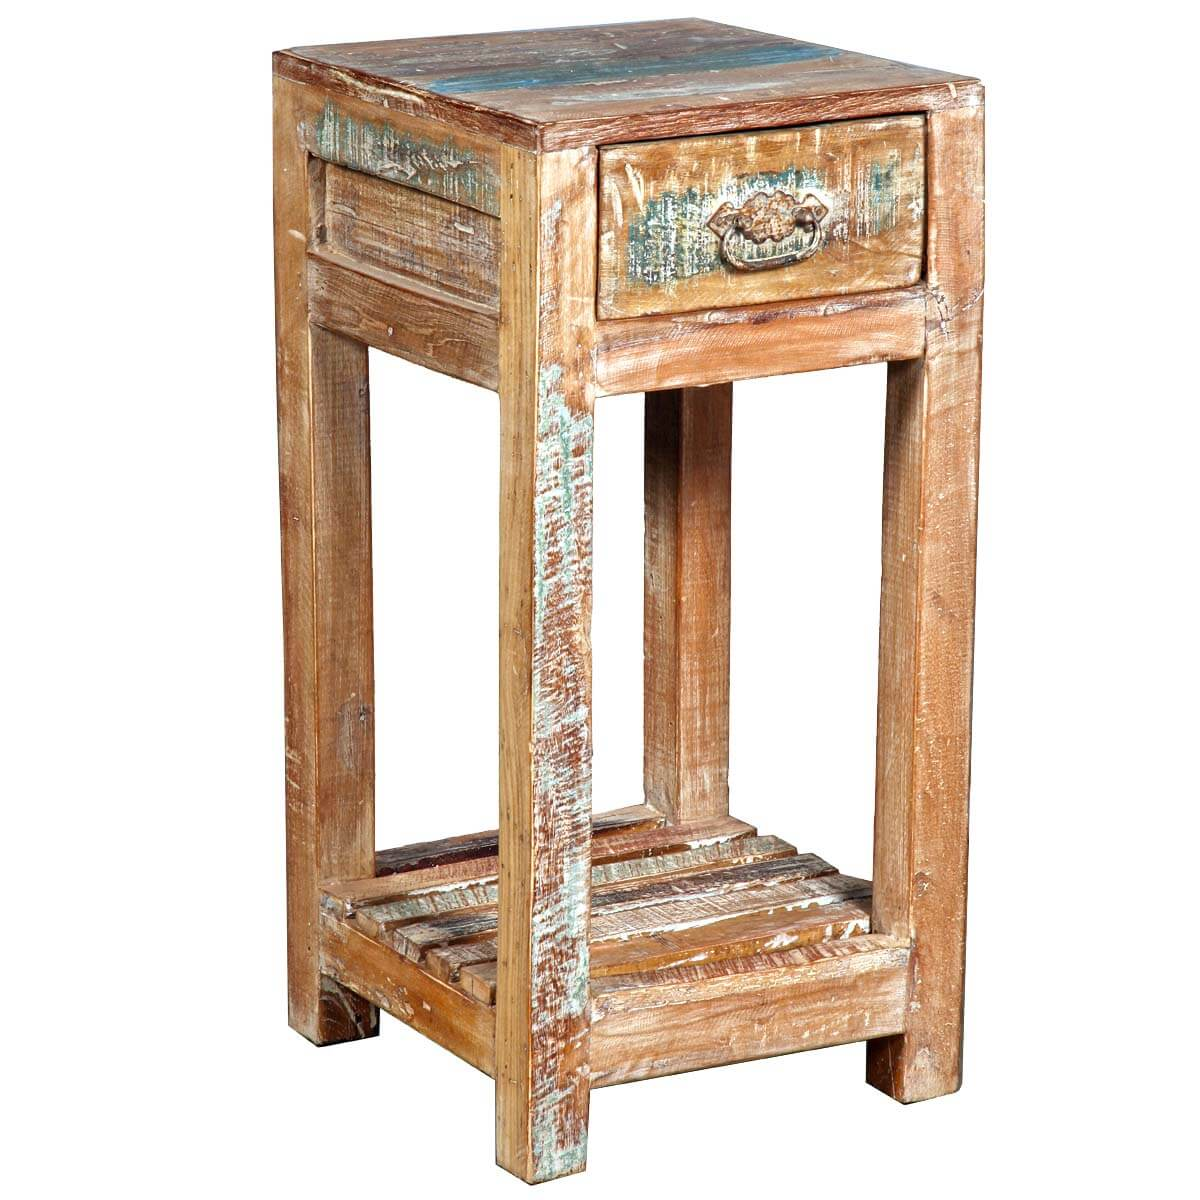 Reclaimed Wood End Tables ~ Appalachian rustic reclaimed wood night stand end table